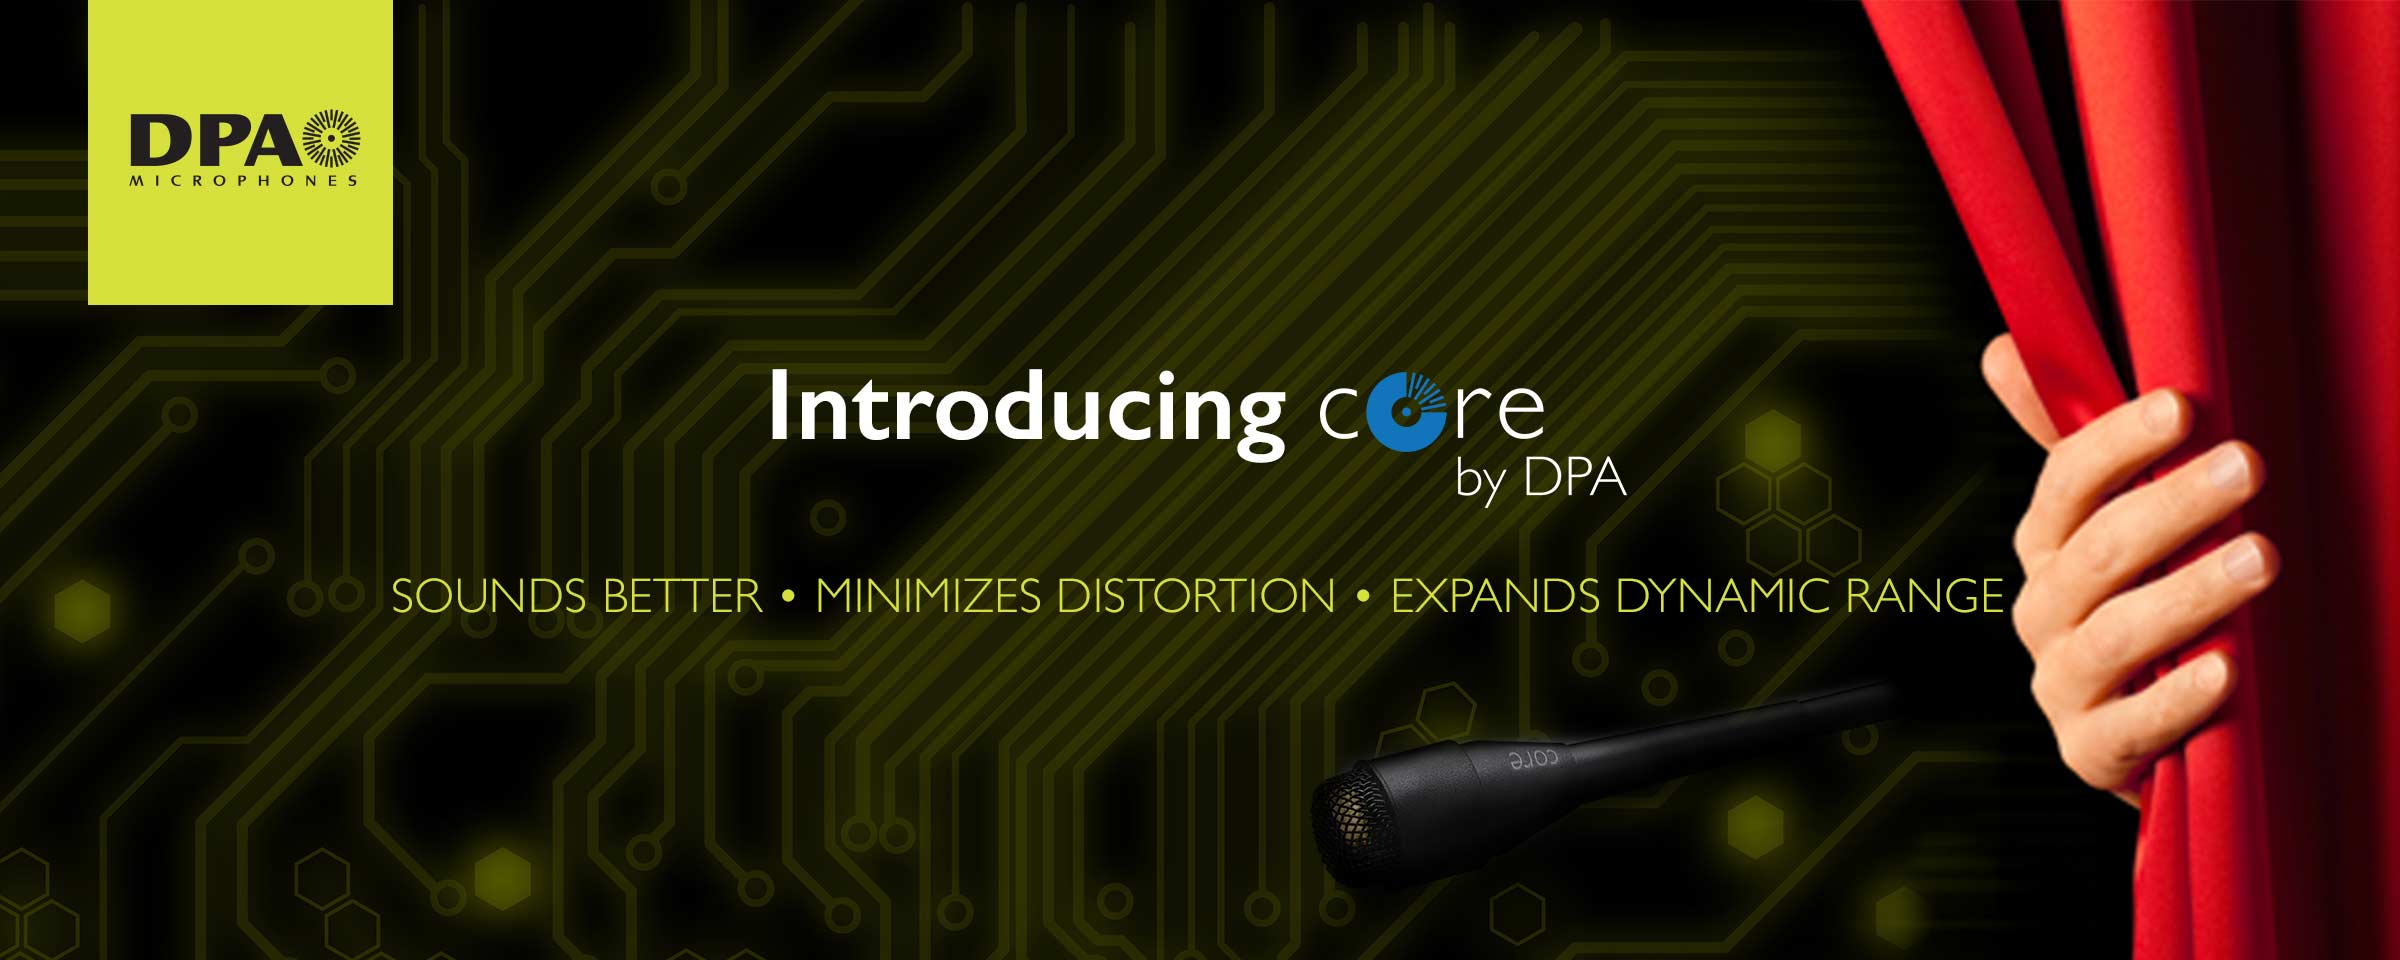 DPA CORE mic technology